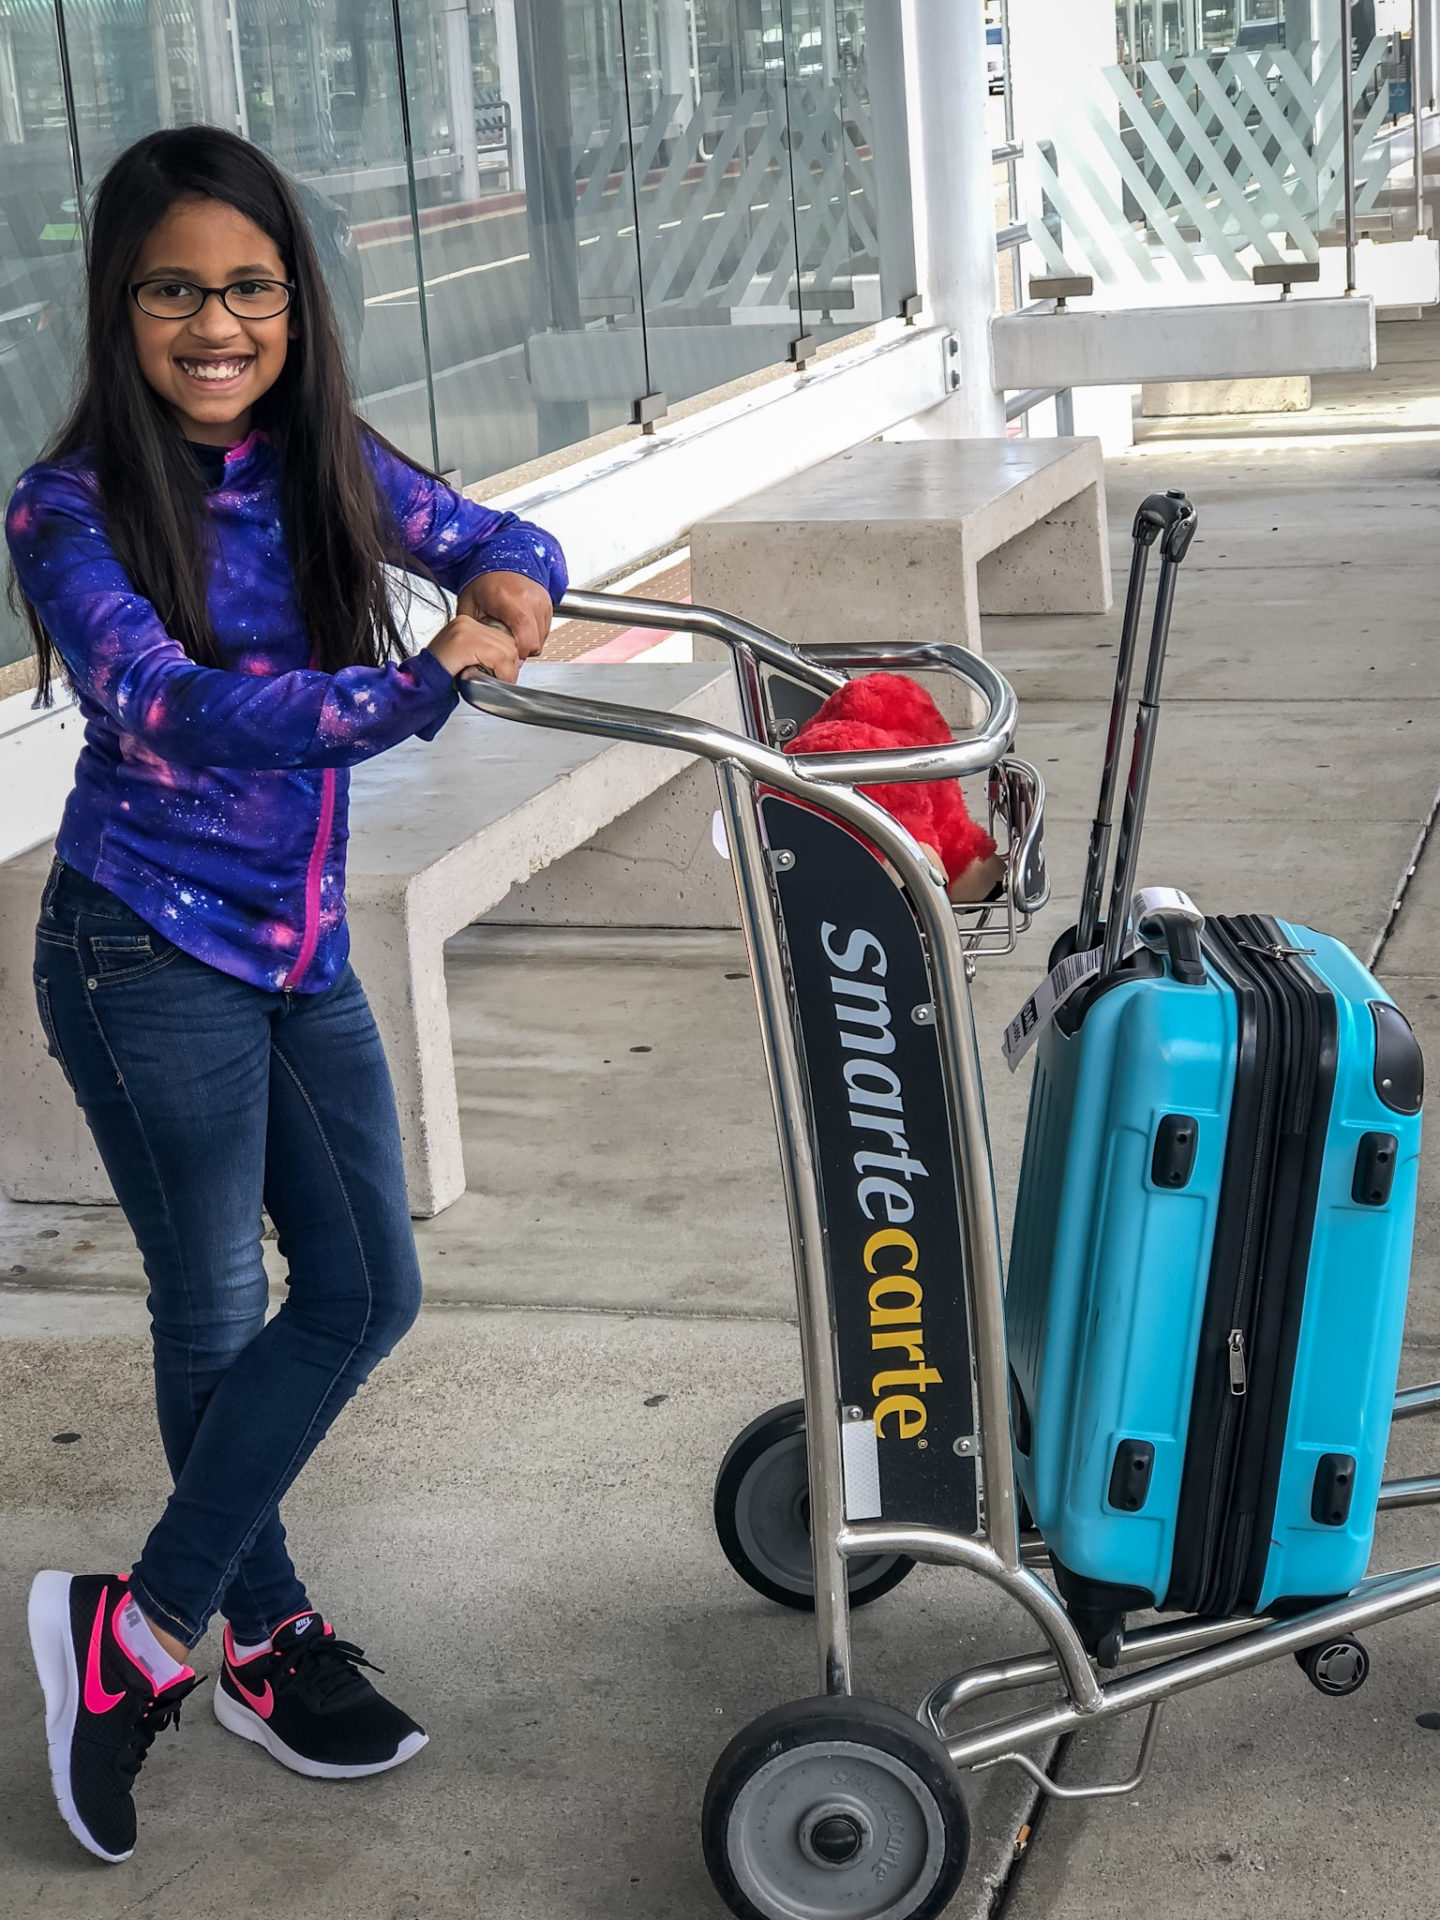 7 Ways to Keep Your Kids Safe While Traveling Abroad